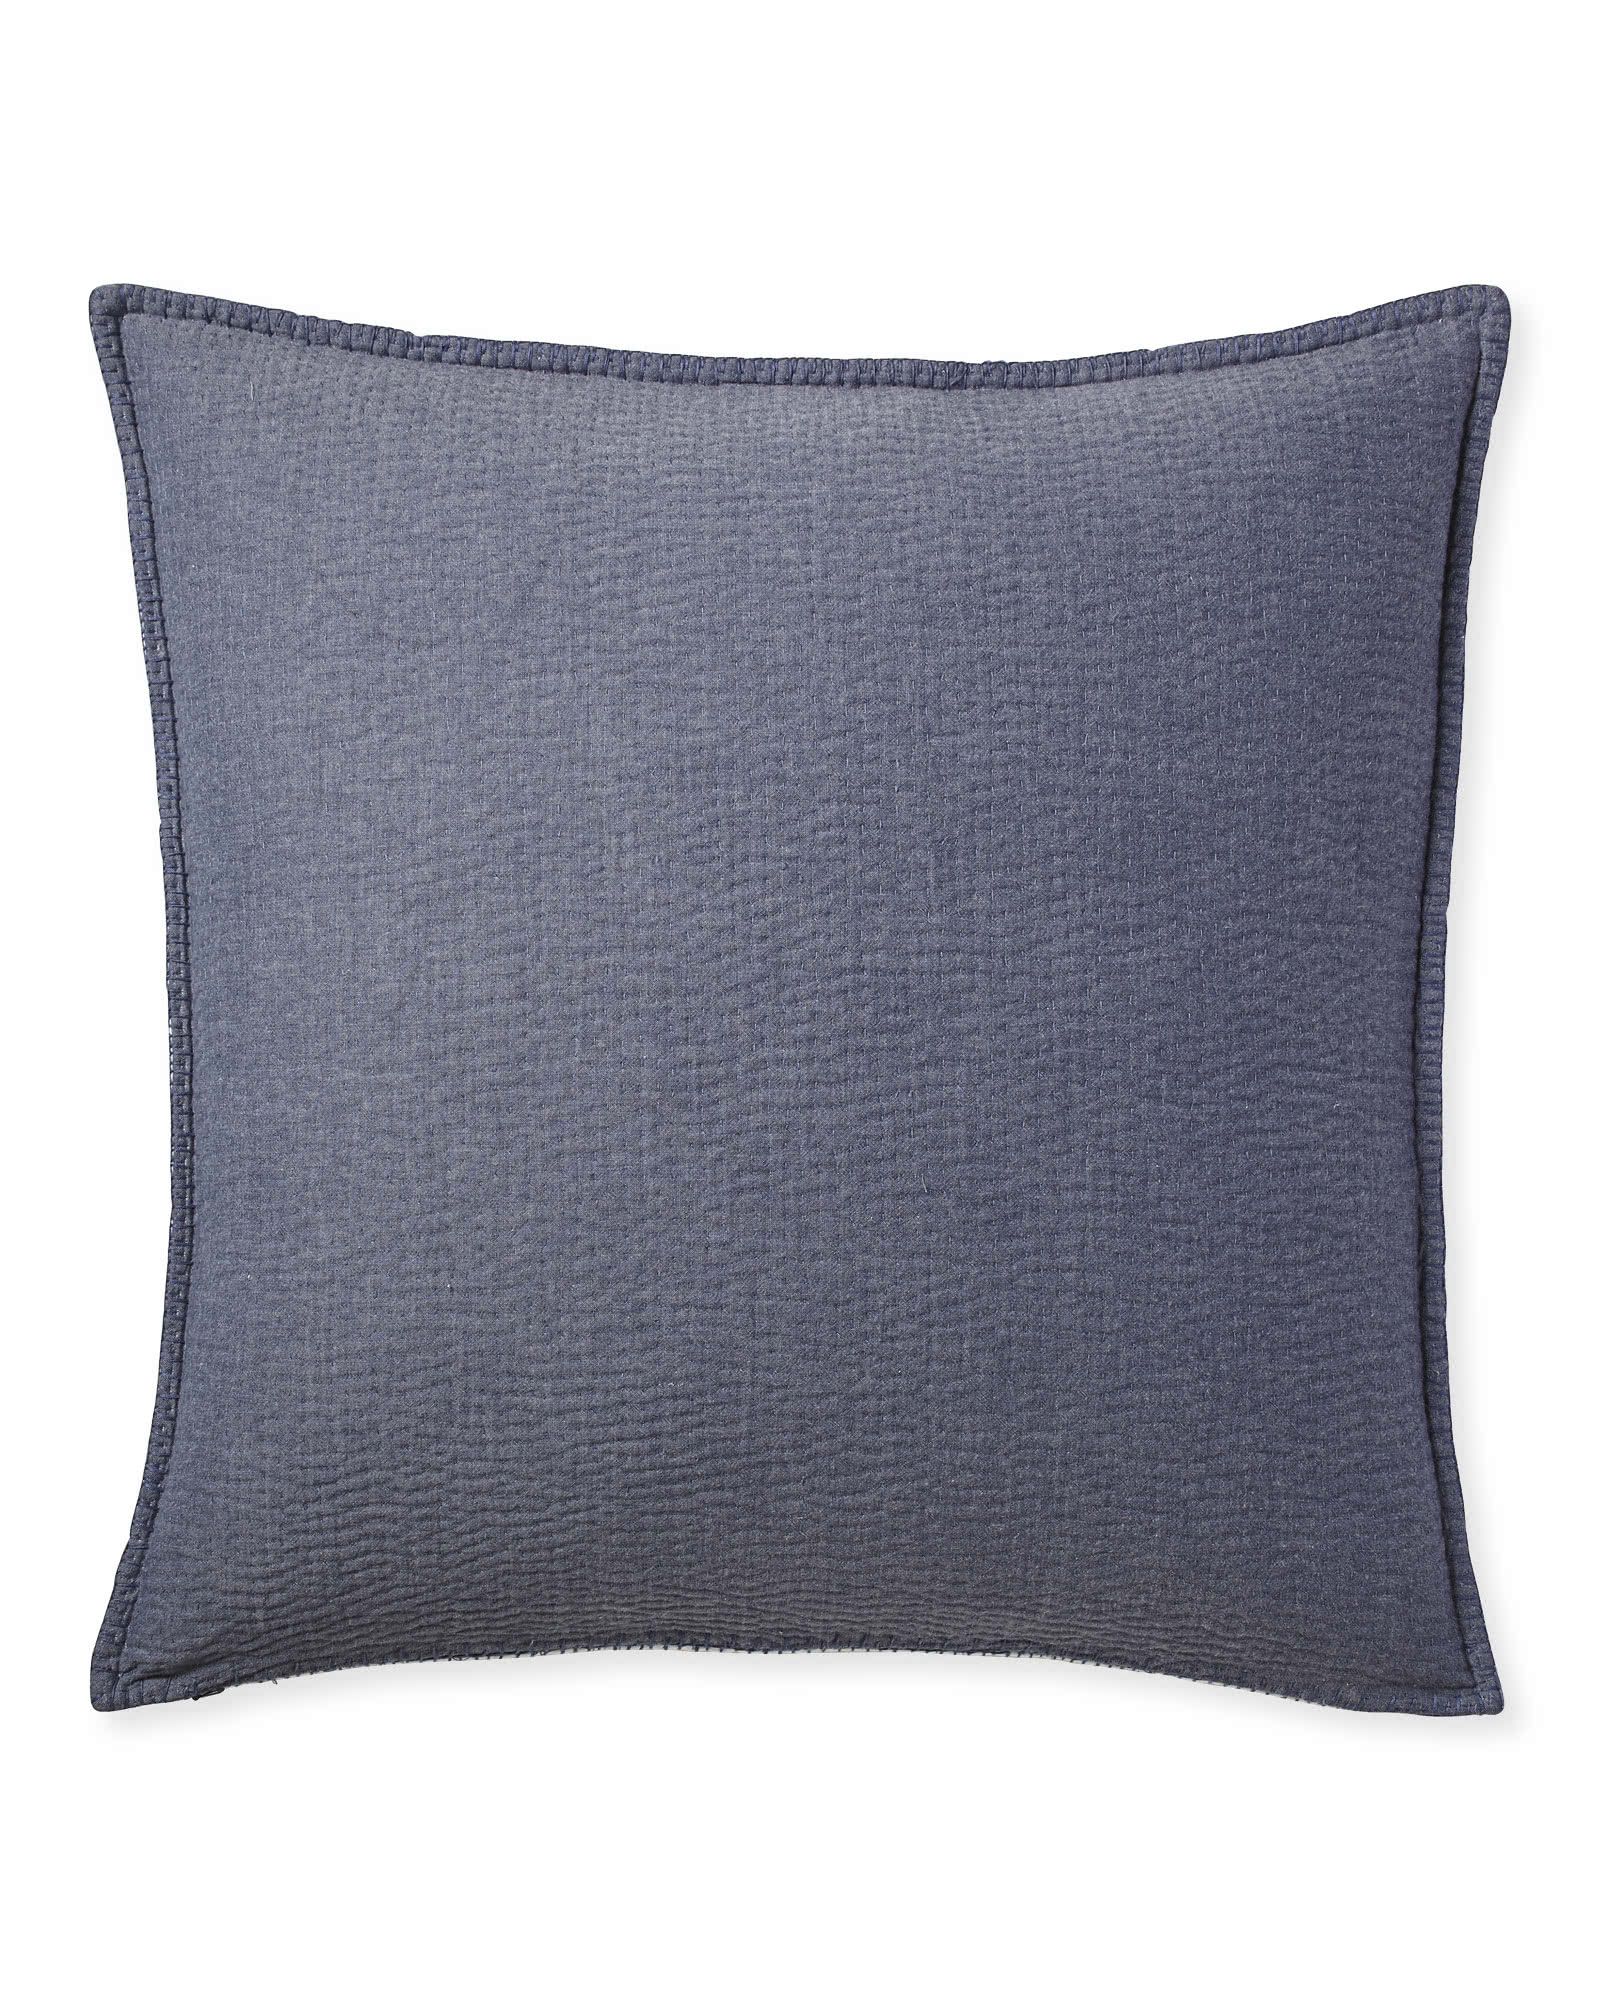 Southampton Pillow Cover Serena Amp Lily